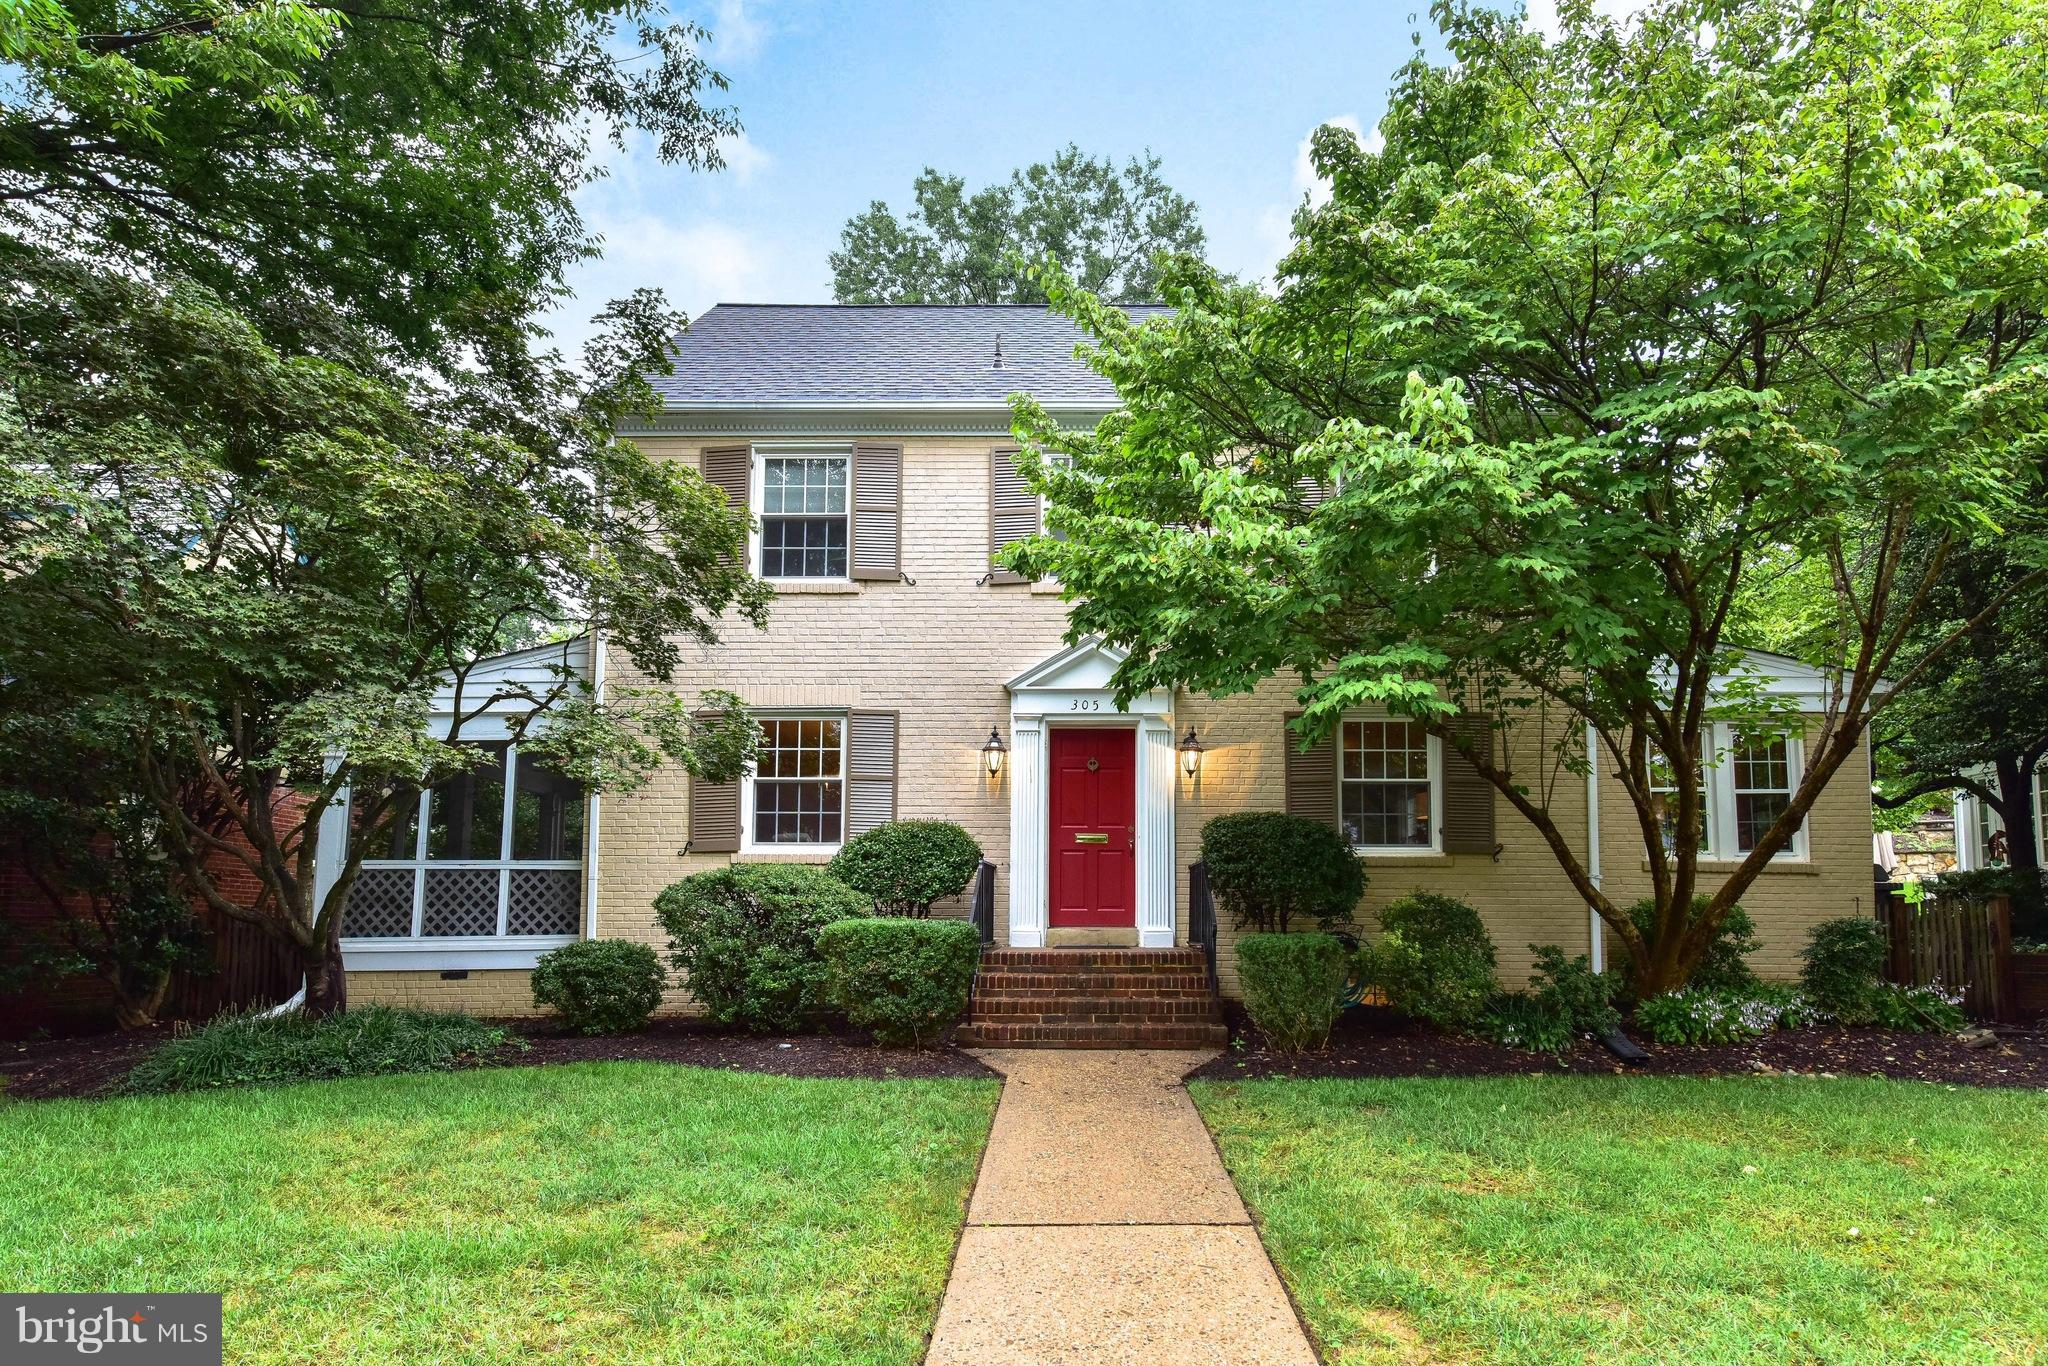 Spacious & updated w/a 3 story add't blks to  METRO & Maury Elem! Generous rm sizes, built-ins, 3 fpls, refin. wd flrs, freshly painted w/rpl windows thru-out. Gour eat-in kit, fab FR w/French drs to fenced yd. 4 nice size upper bdrms including a lg Mbdrm w/updated en suite bath & fpl. 5th BR w/3rd full bath on 4th lvl. Mn lvl den, LL rec rm. Storage in WI attic & unfin. bsmt. Side porch & patio.